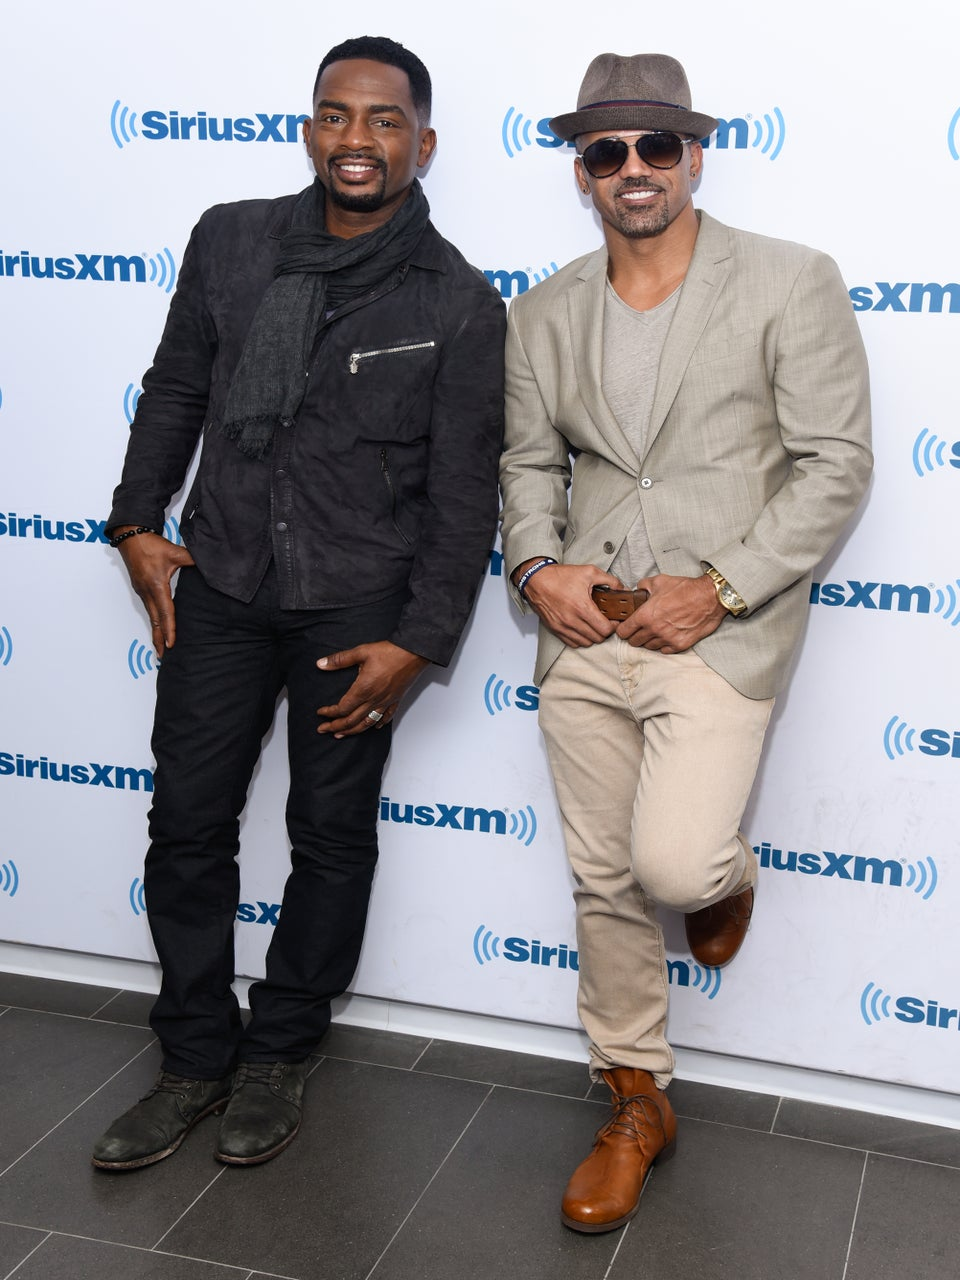 Hollywood's Best Bromance: Shemar Moore Praises Long-Time Friend Bill Bellamy And Dishes On 'The Brothers 2'